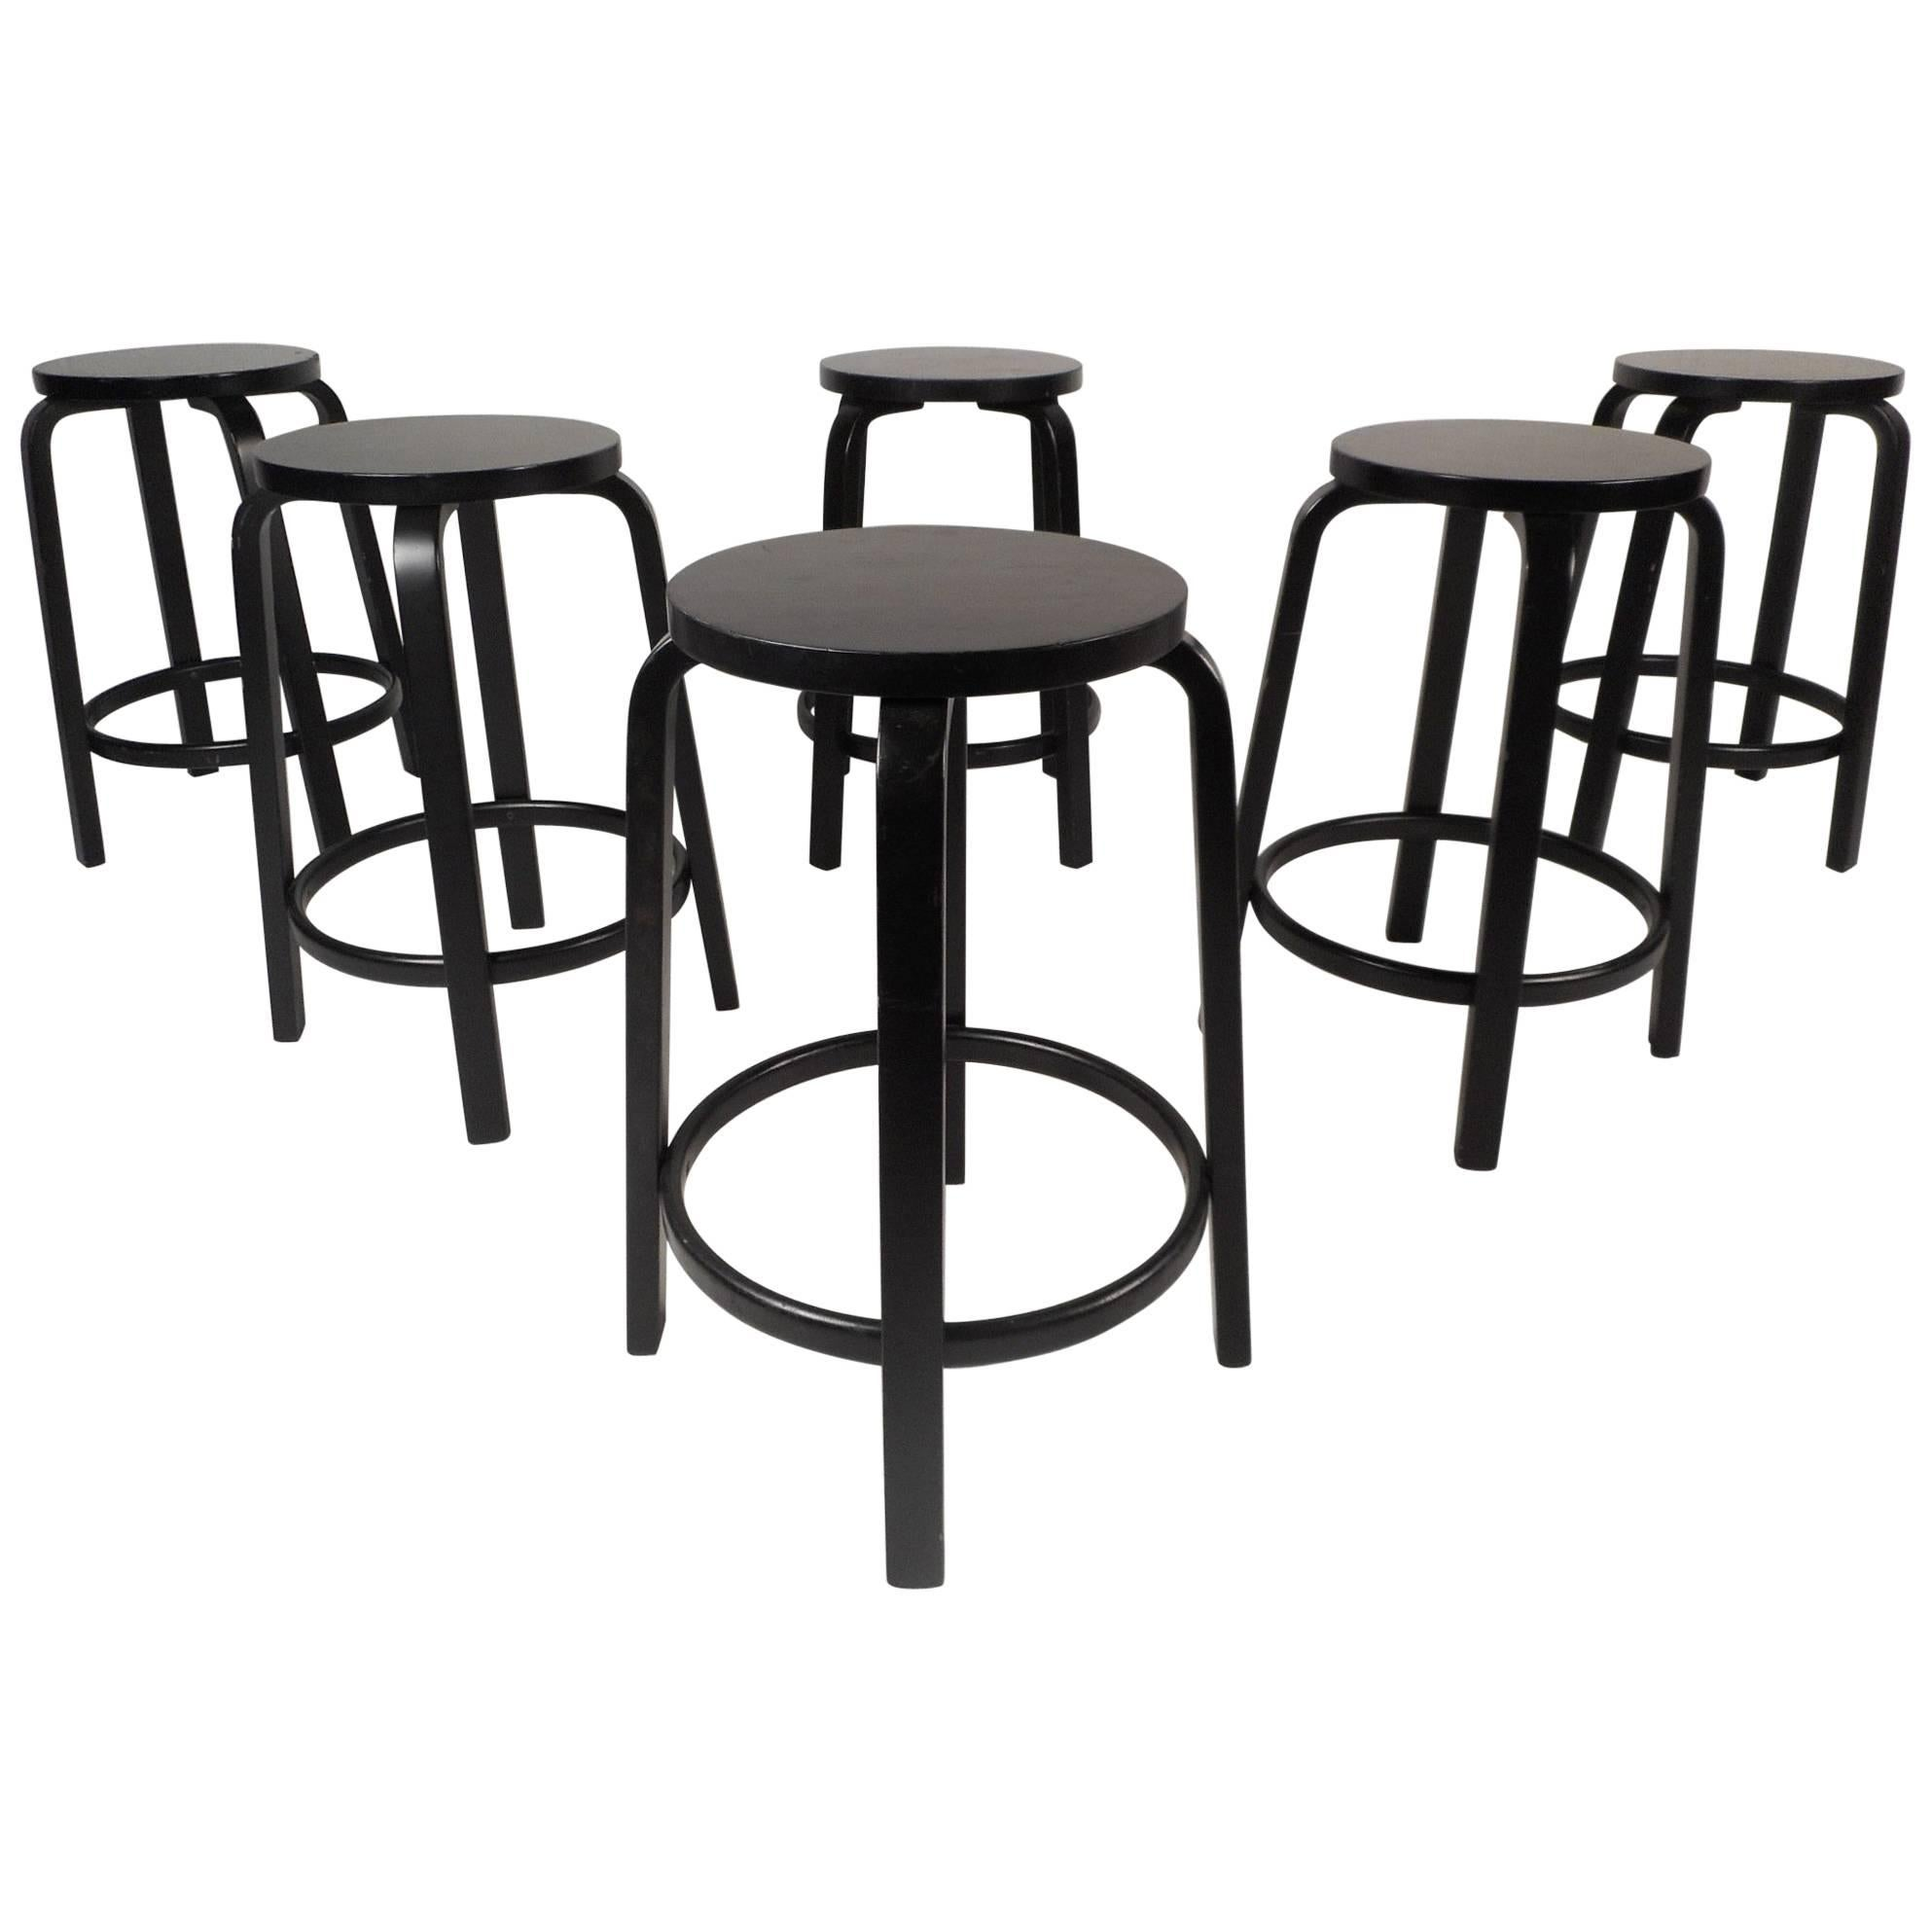 Set of Six Contemporary Modern Alvar Aalto Stools